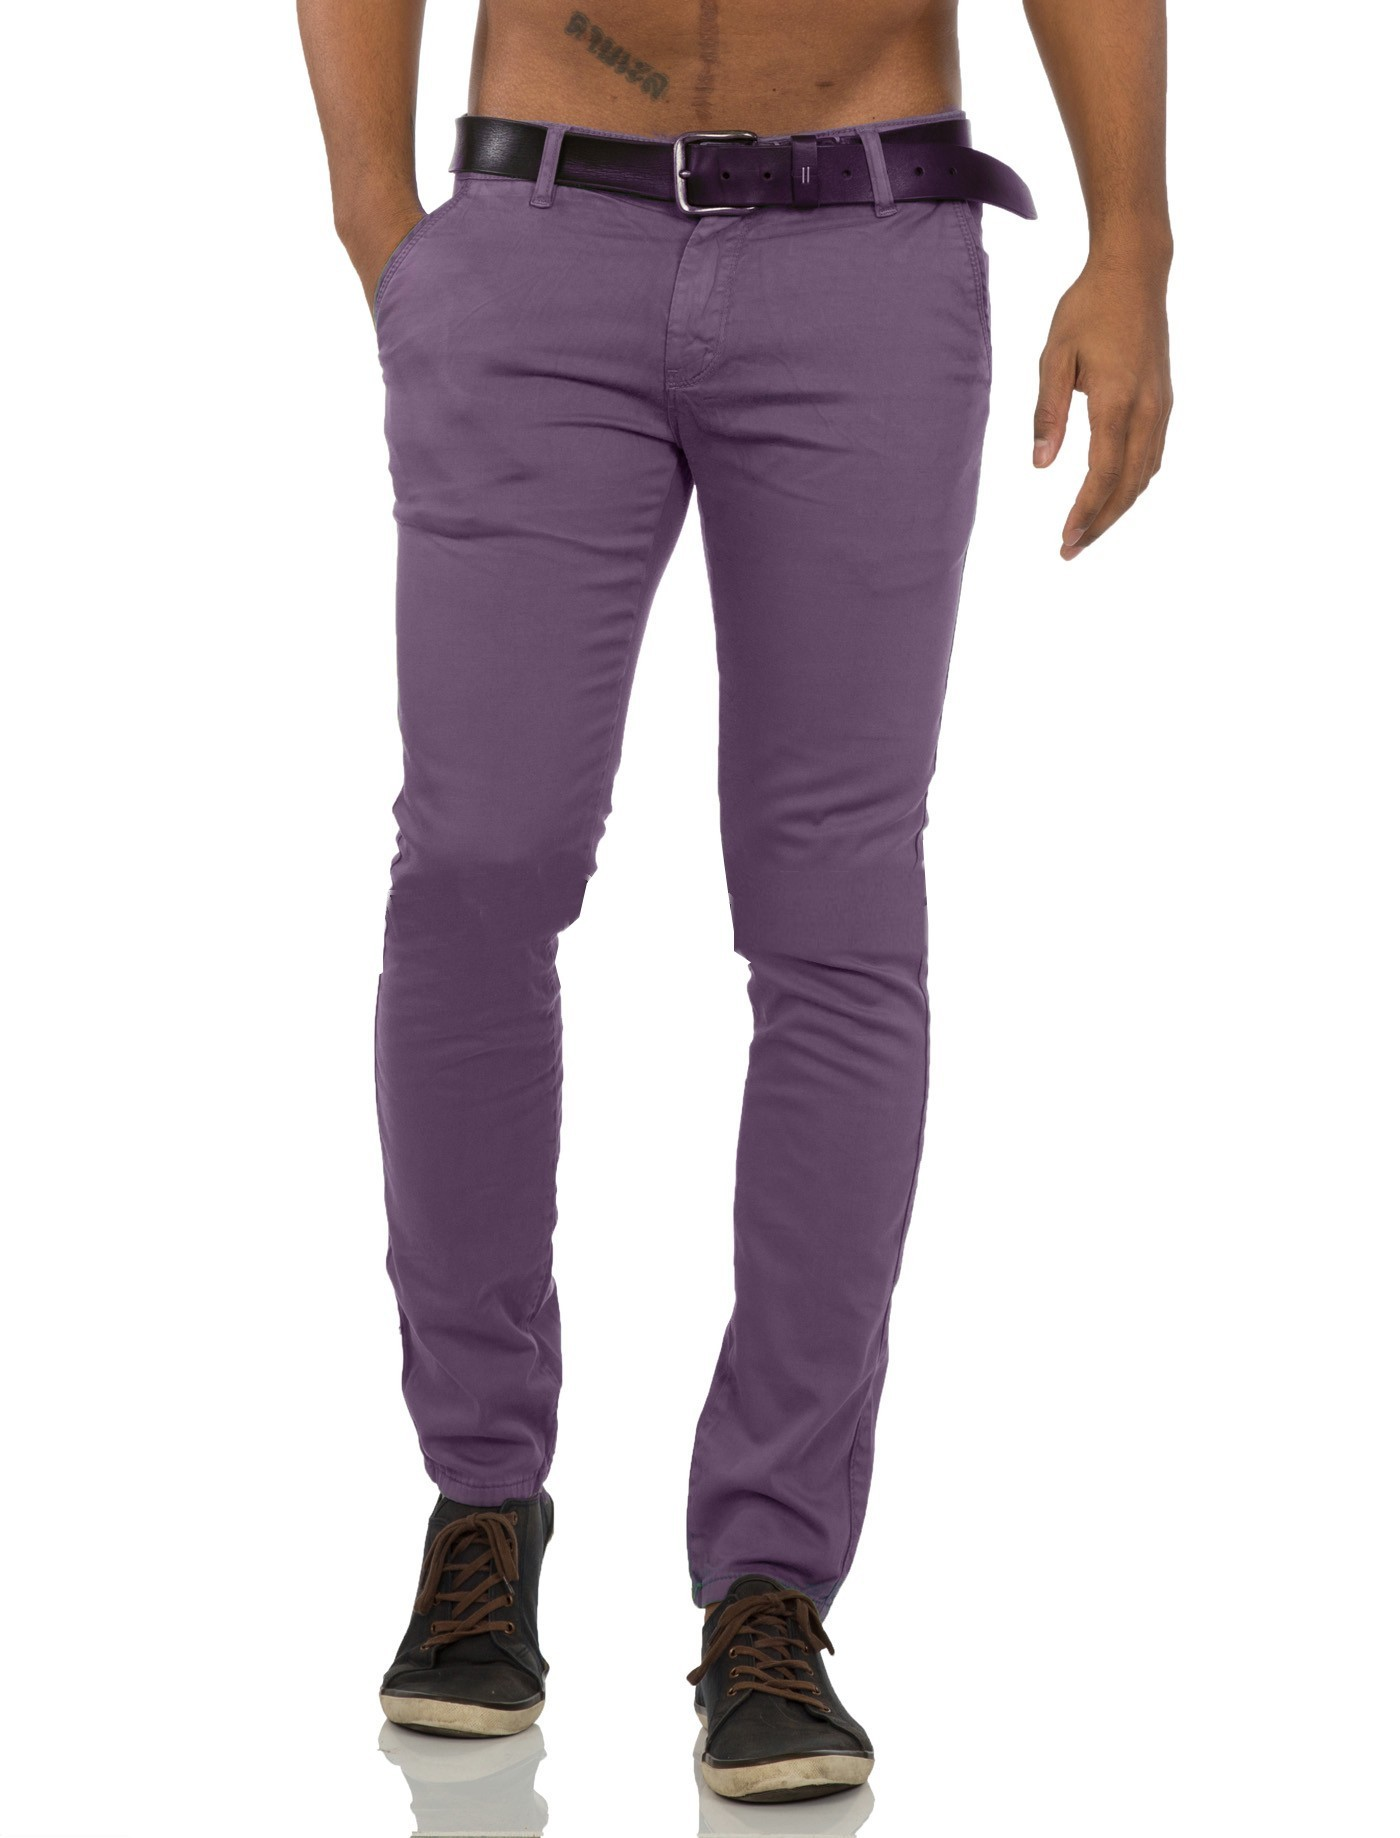 pantalon chino homme violet pas cher. Black Bedroom Furniture Sets. Home Design Ideas